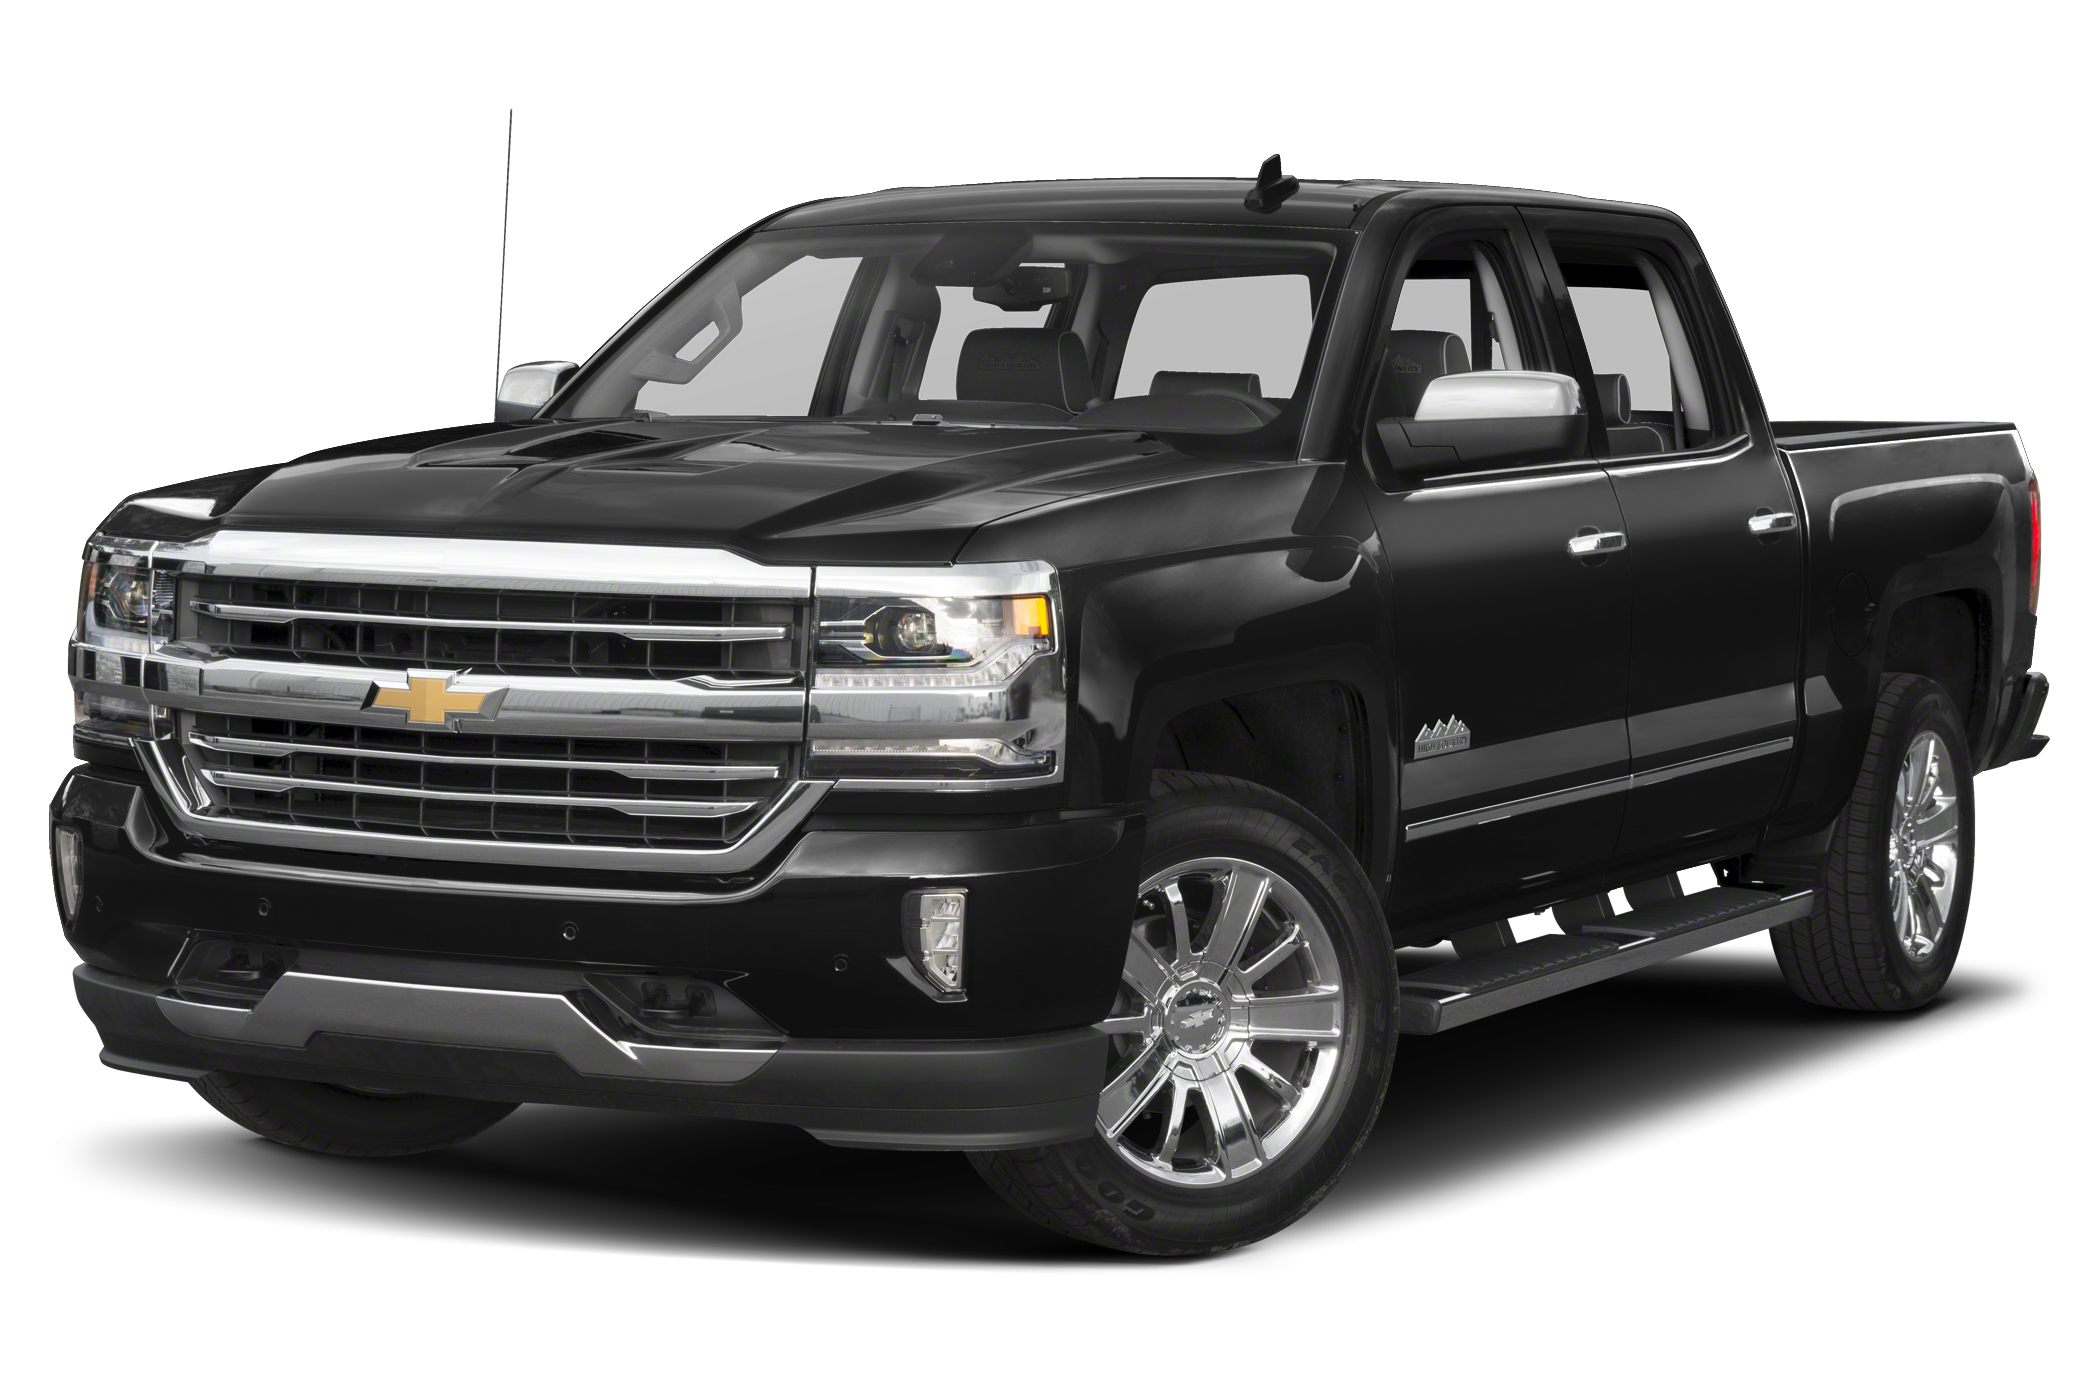 2016 Chevrolet Silverado 1500 High Country Road trips can be fun again with the anti-lock brakes